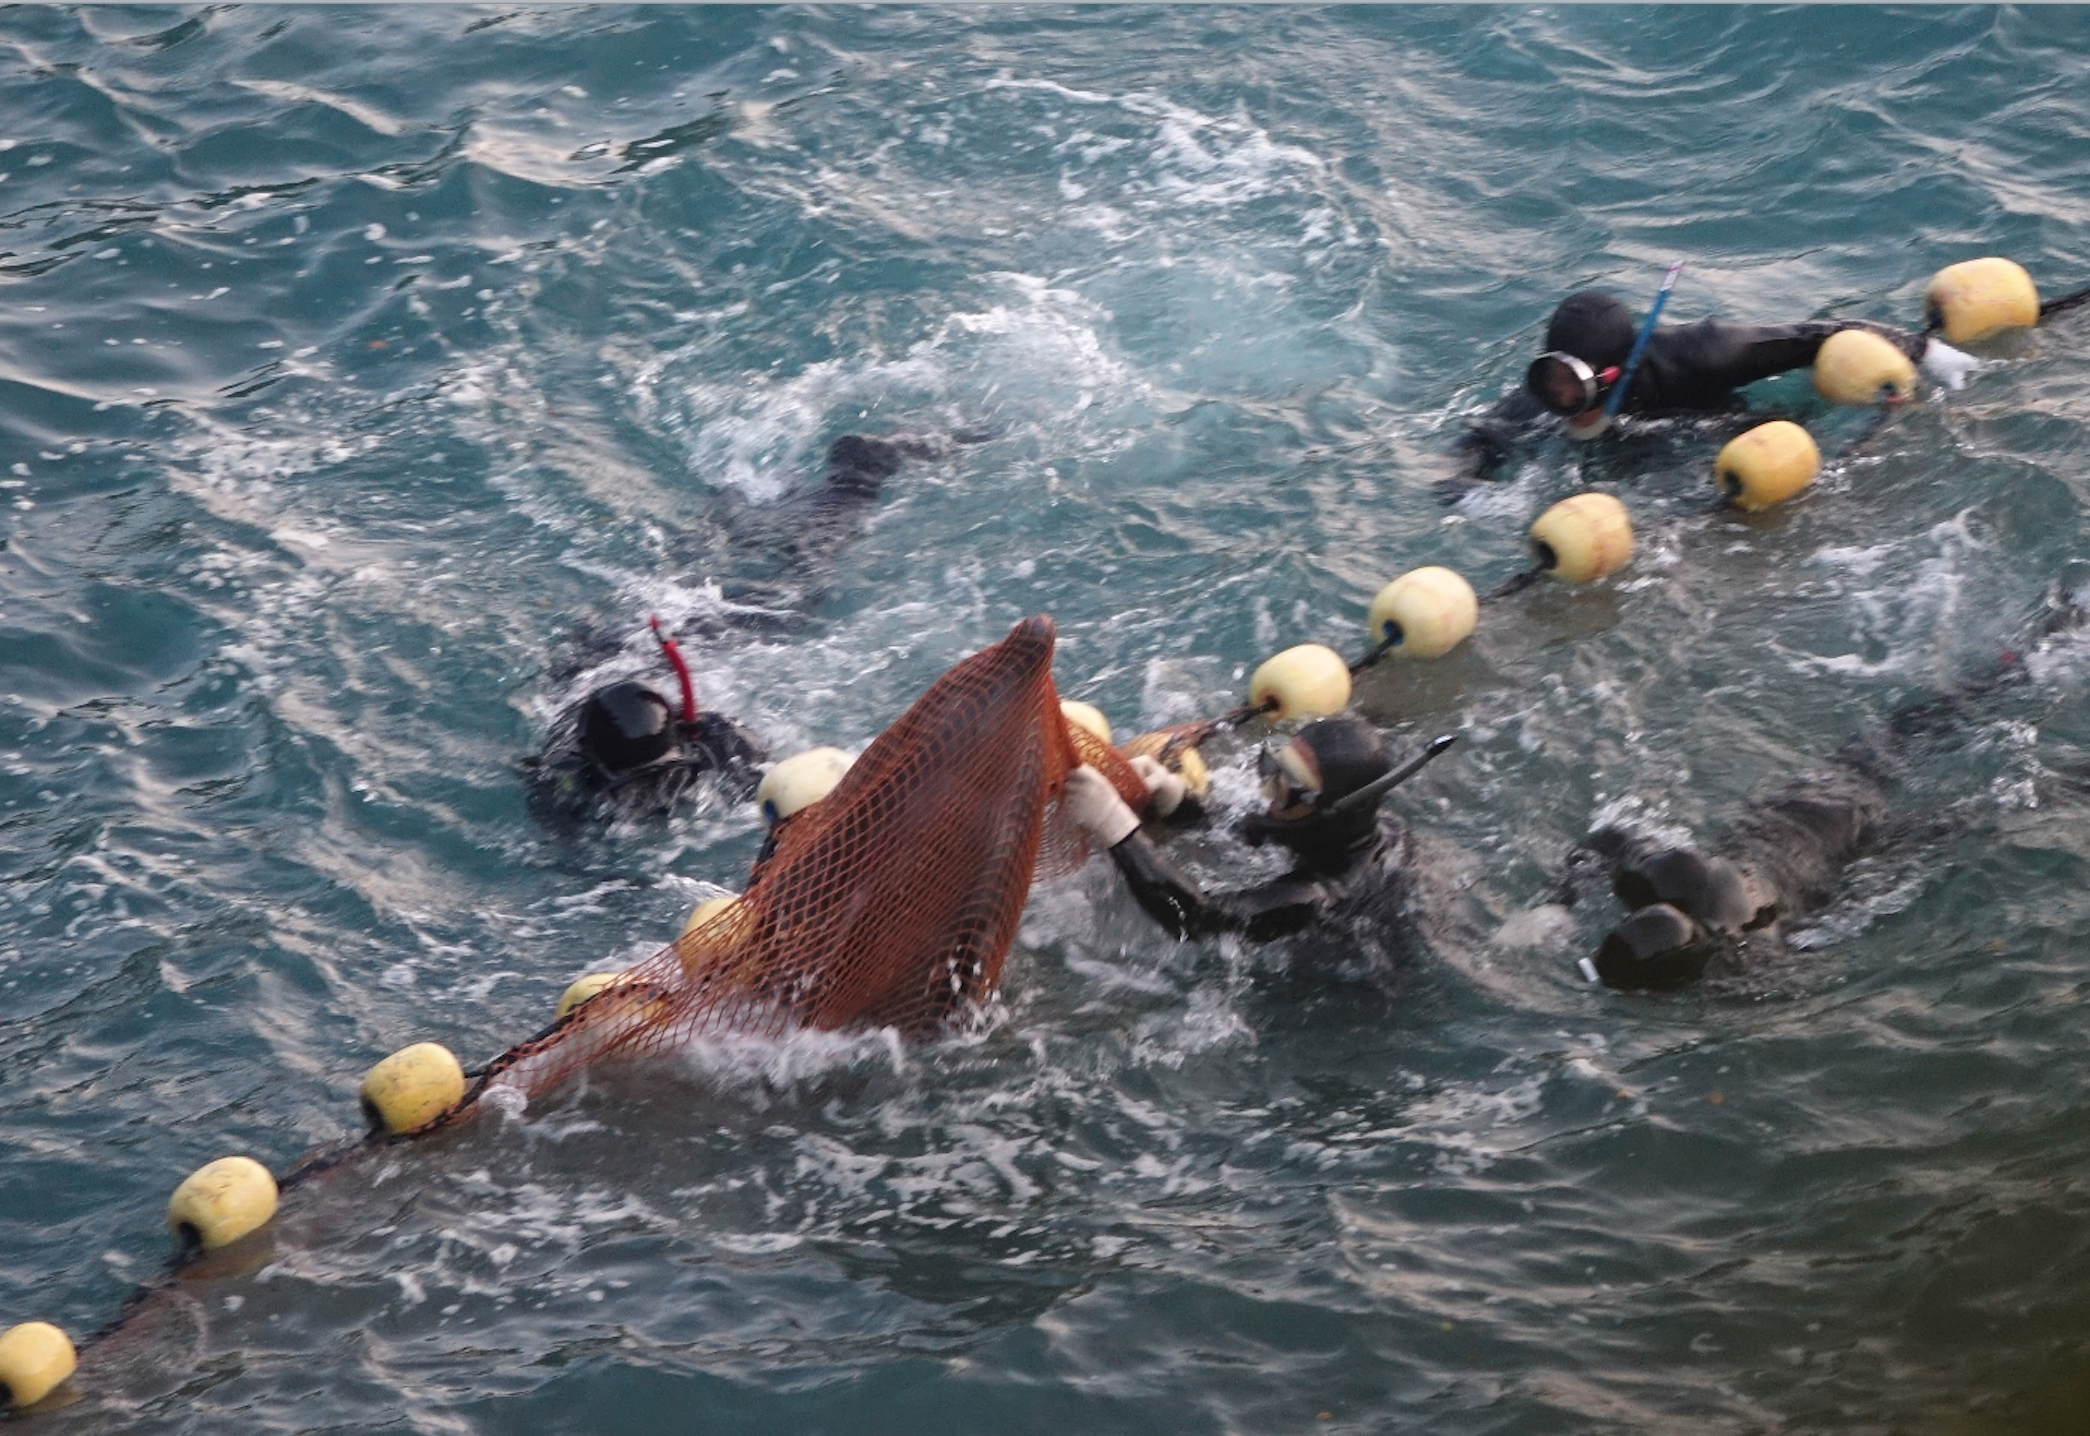 Brutality in the cove as captive selection of bottlenose dolphins takes place, Taiji, Japan.